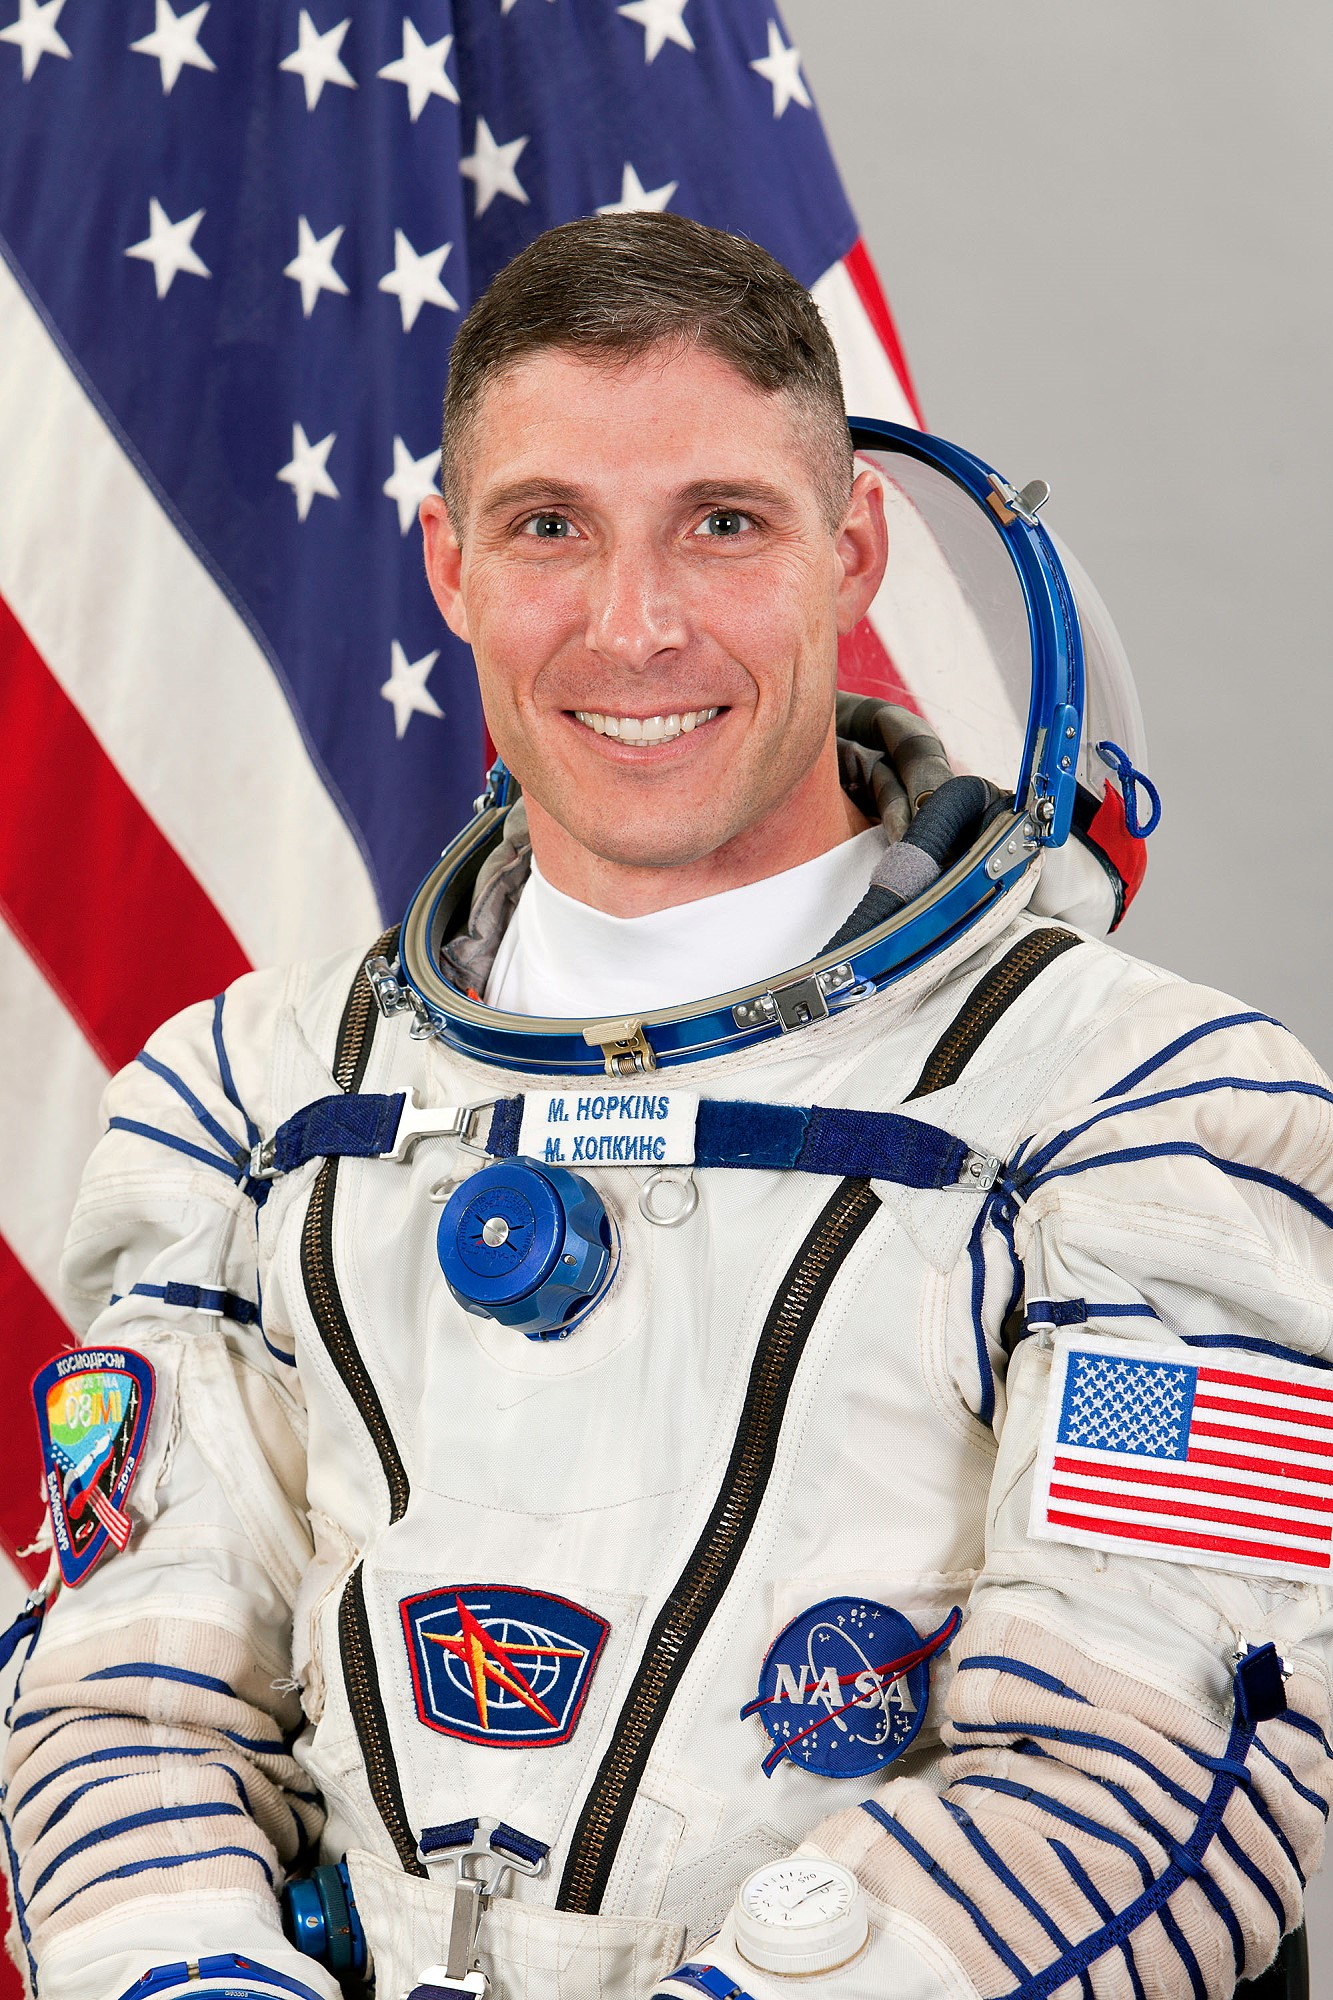 mike hopkins nasa - photo #15